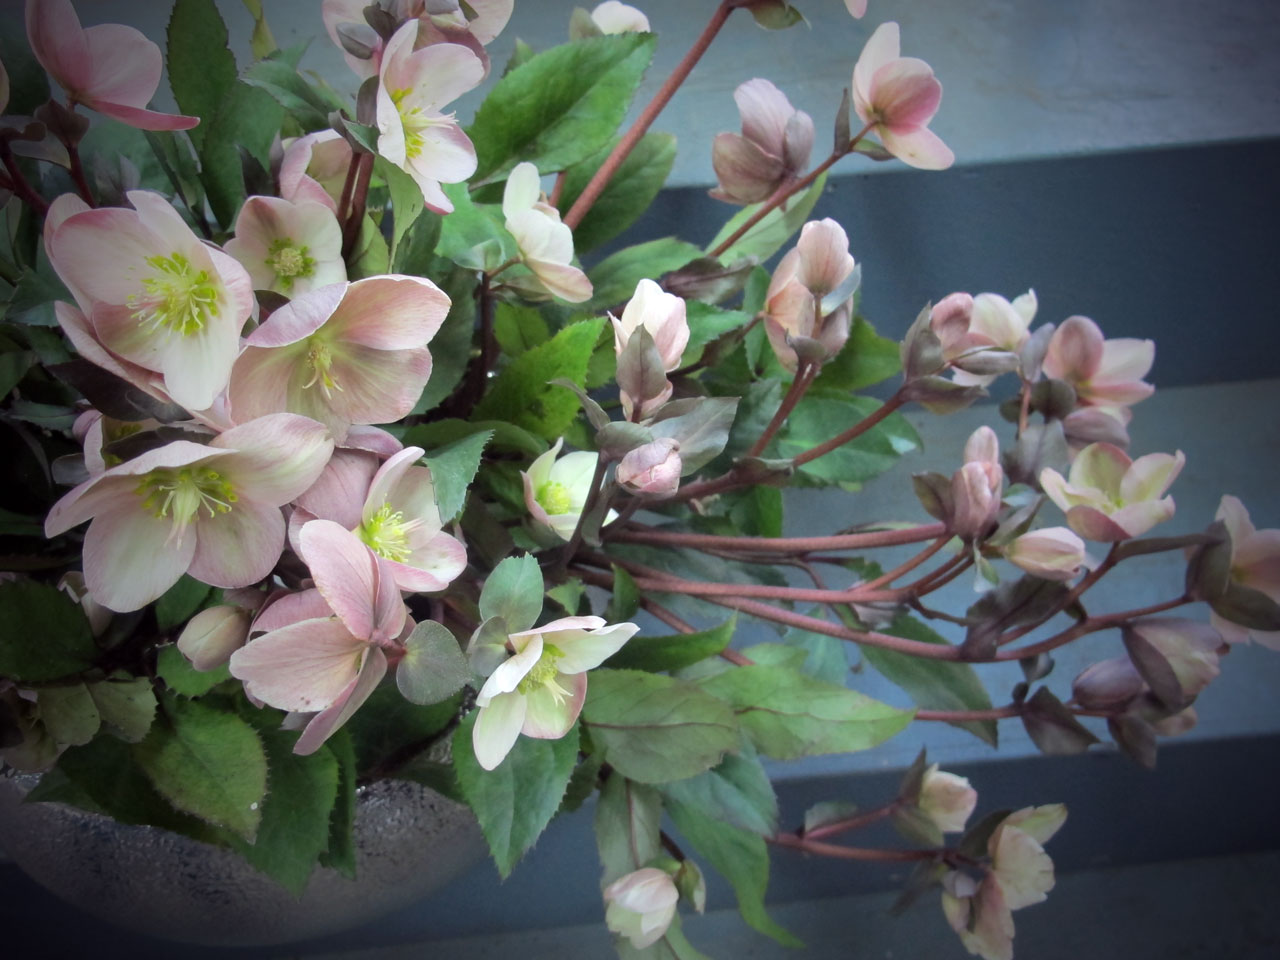 Helleborus flowers in the HMR Designs studio